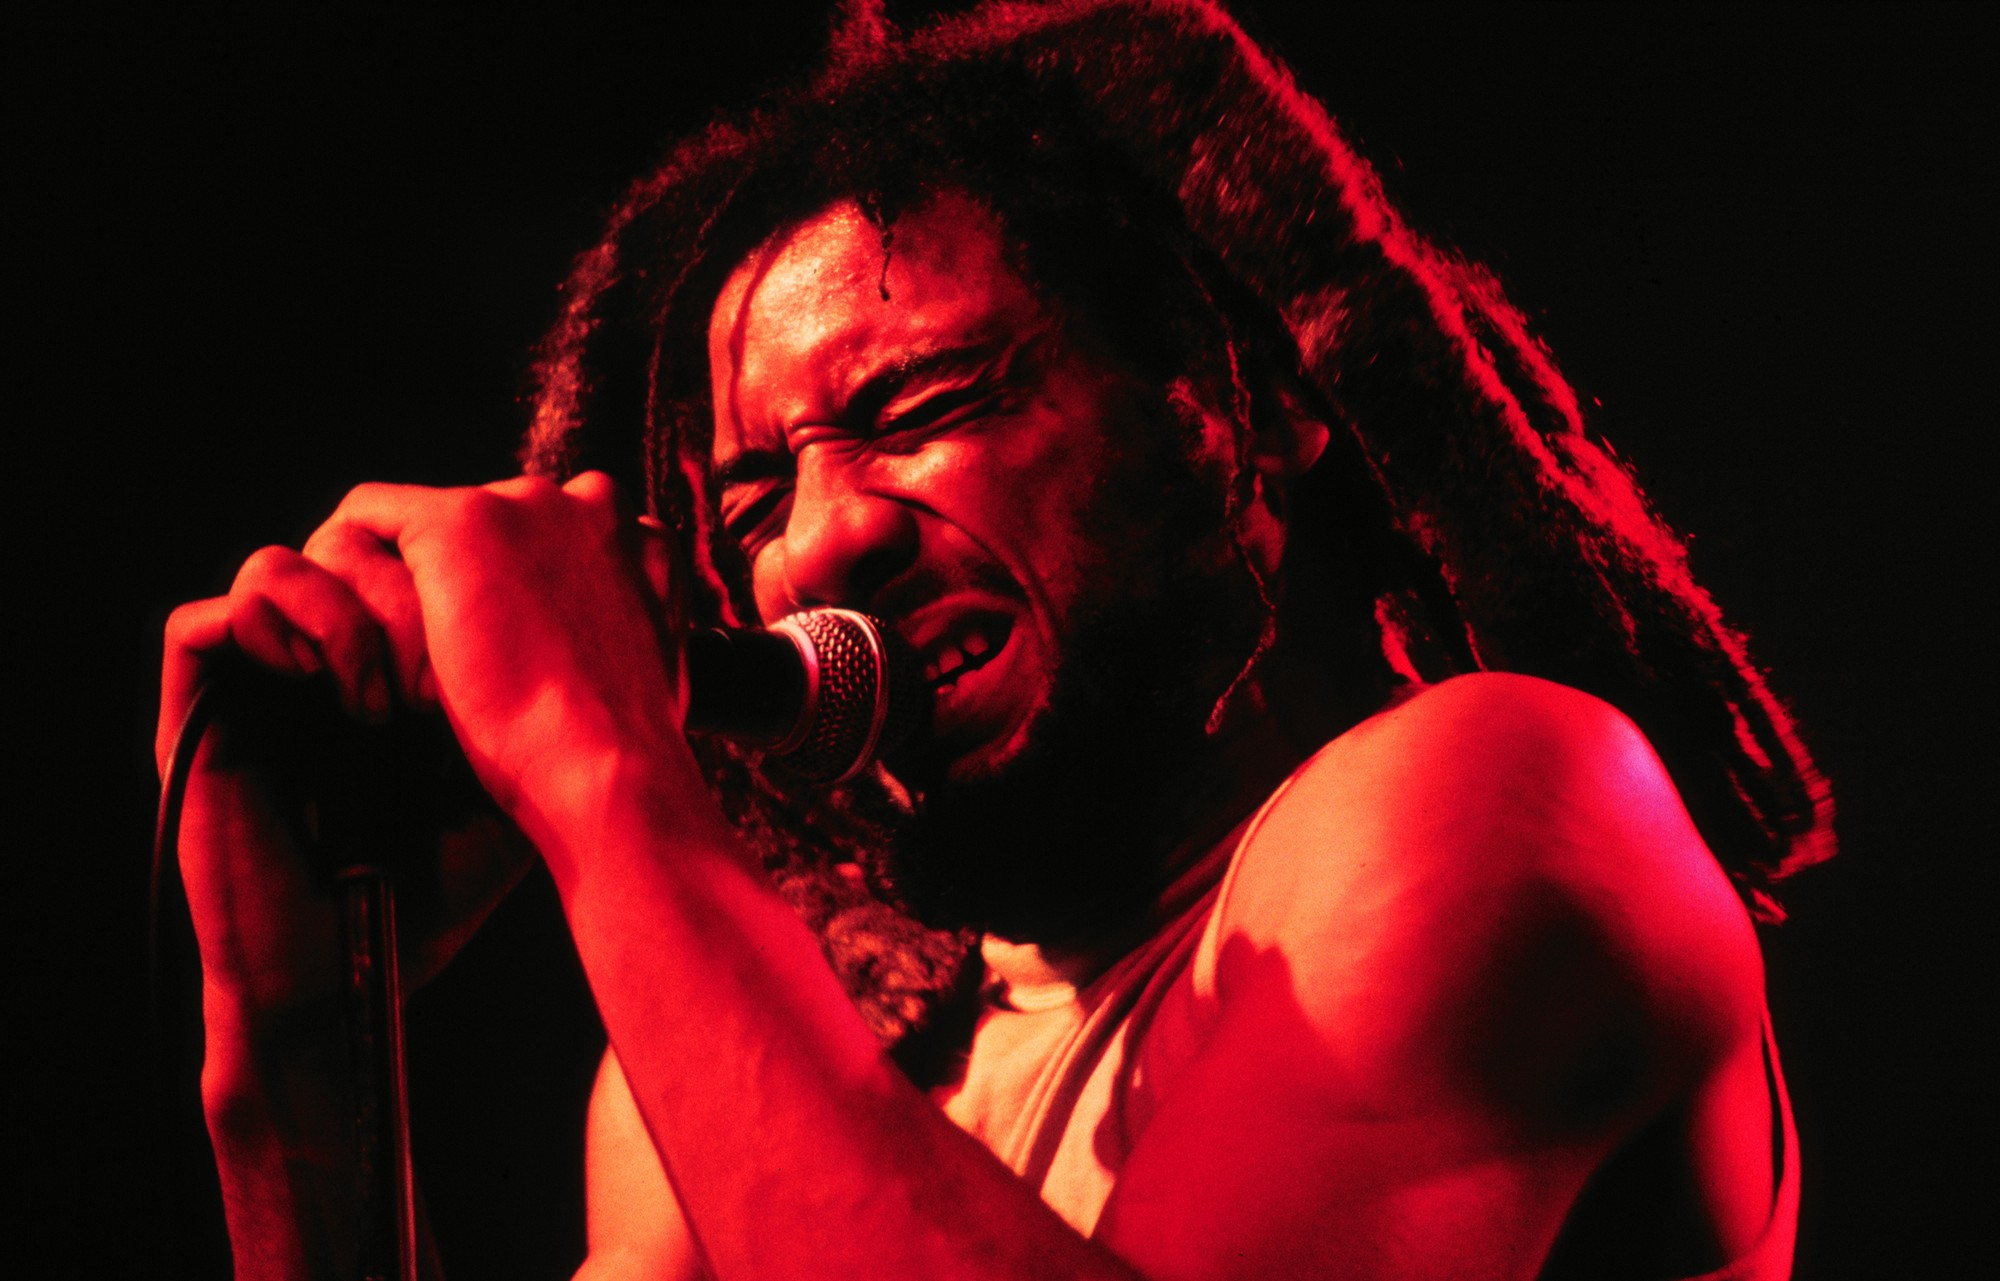 It's been nearly 40 years since Bad Brains shattered stereotypes about punk rock—and black music